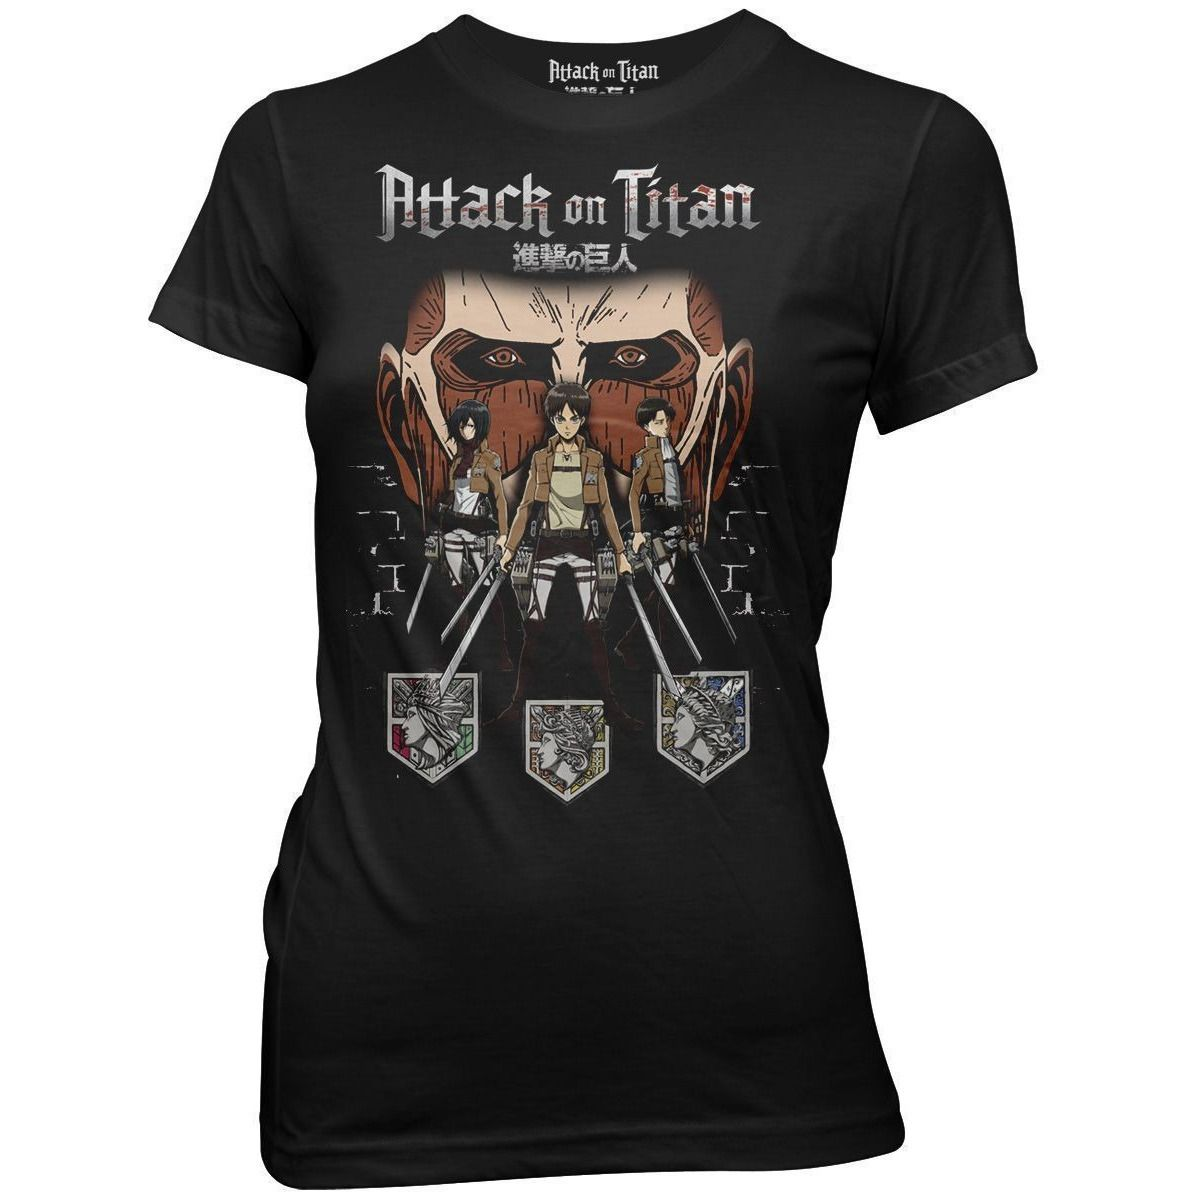 Attack on Titan in the Shadows Shirt Uncanny!